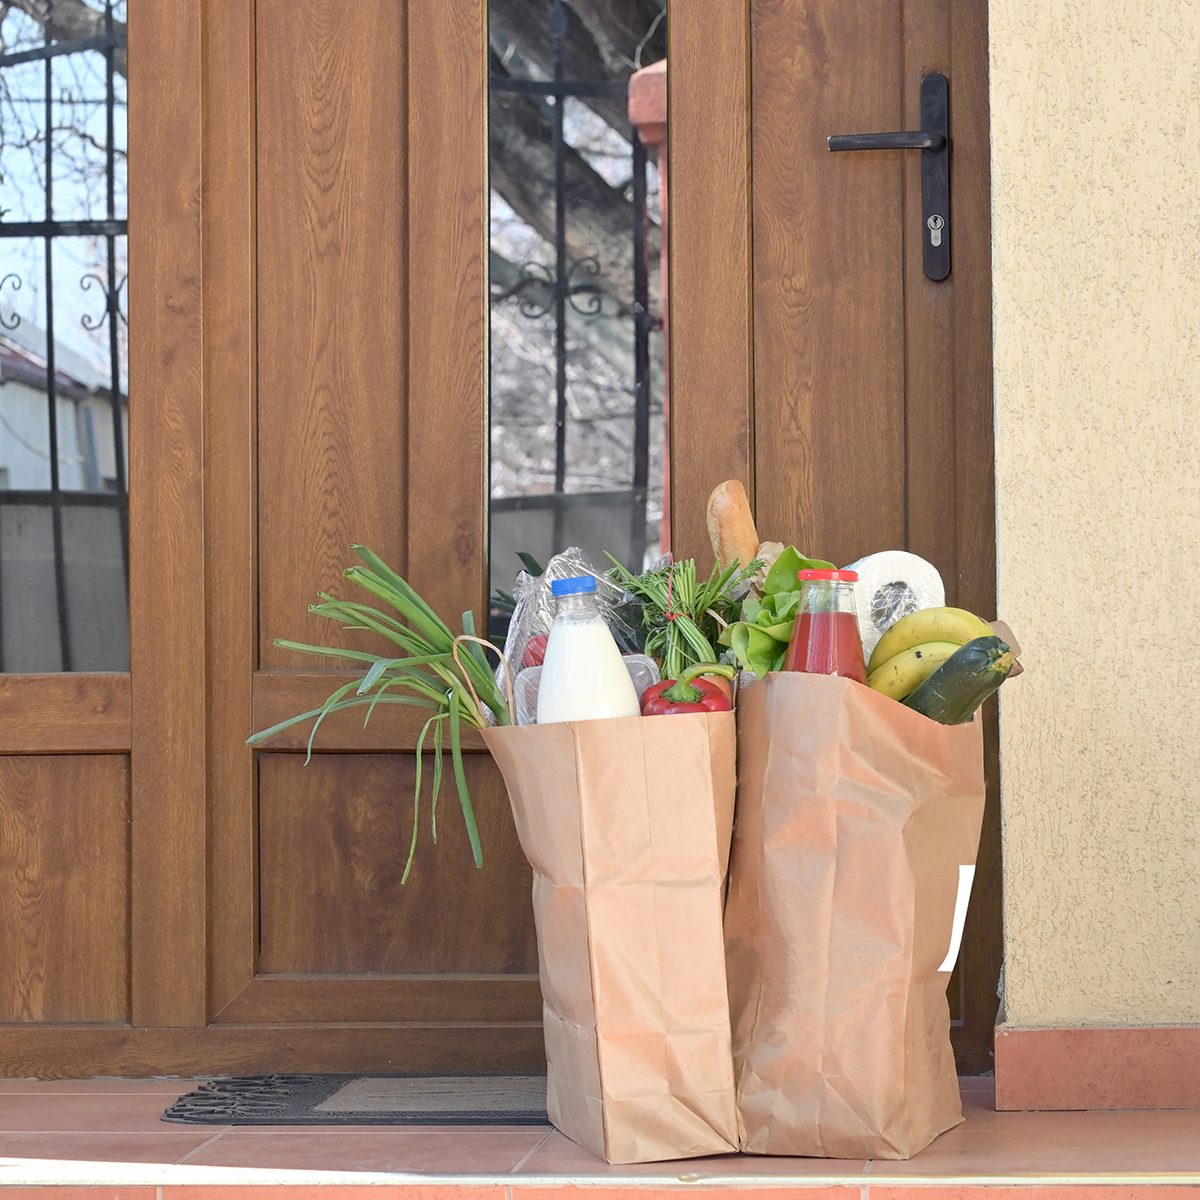 Delivering Food To A Self-isolate People or Quarantine At Home